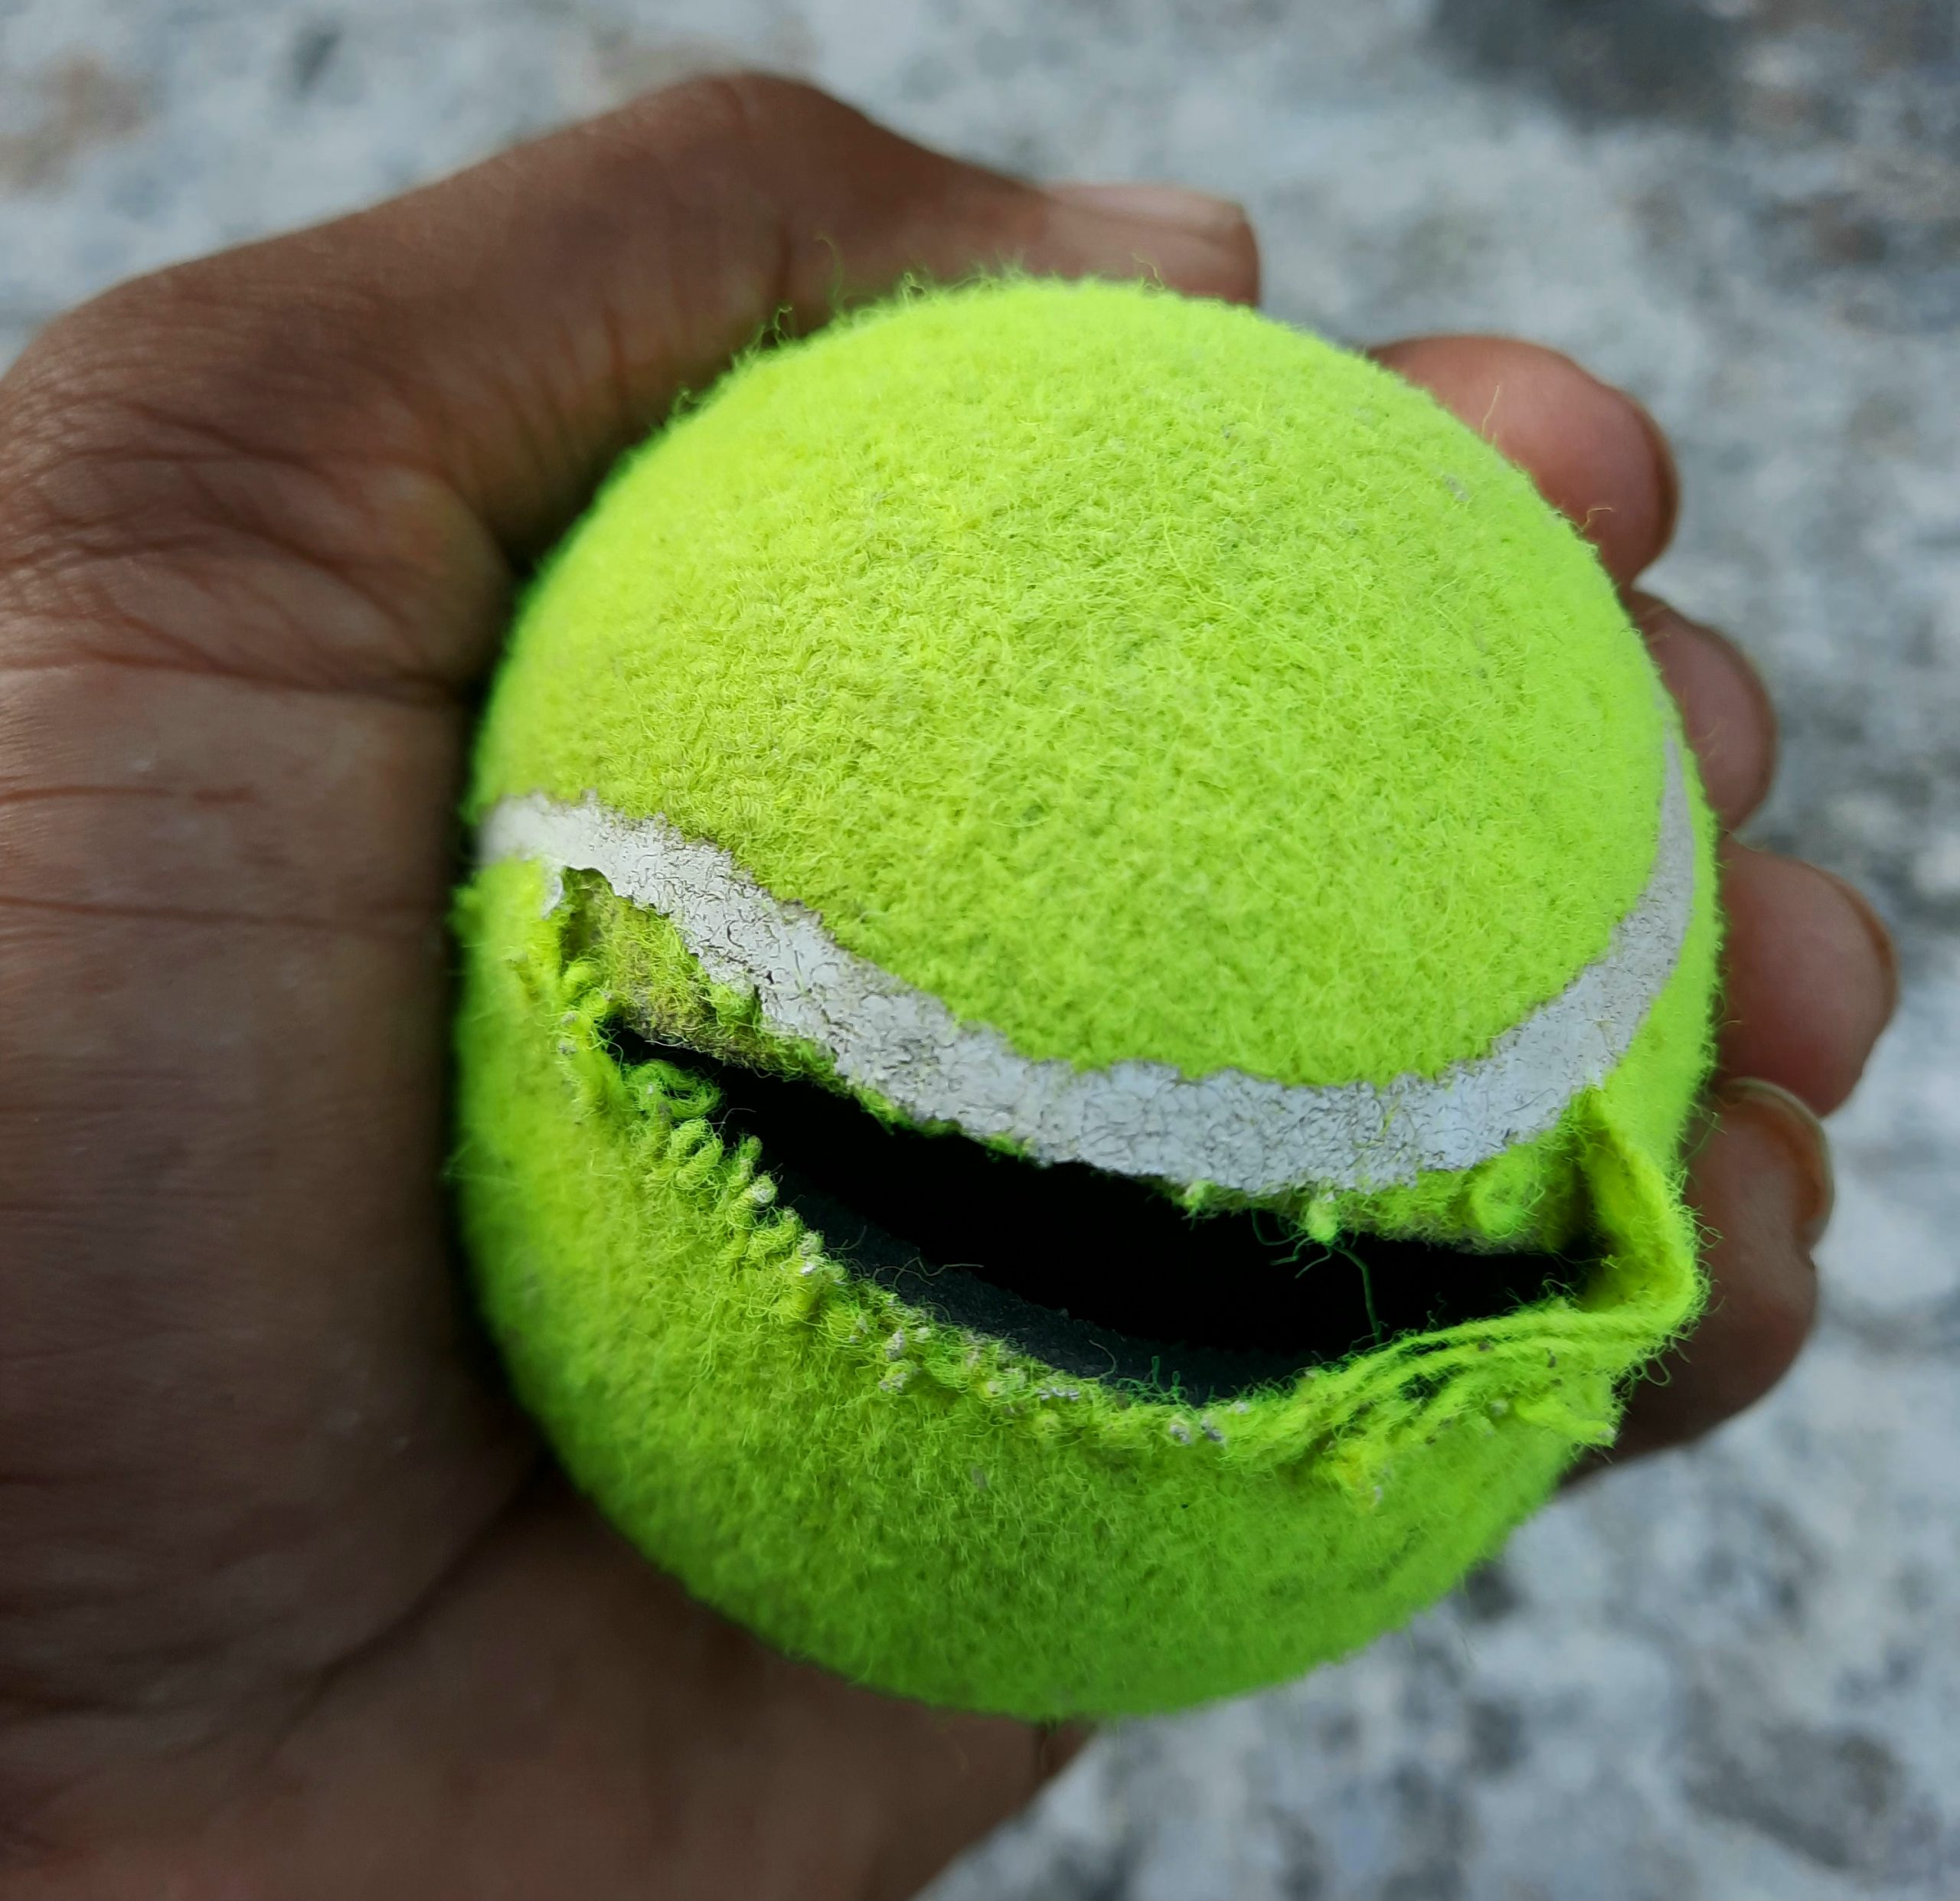 torn tennis ball in hand